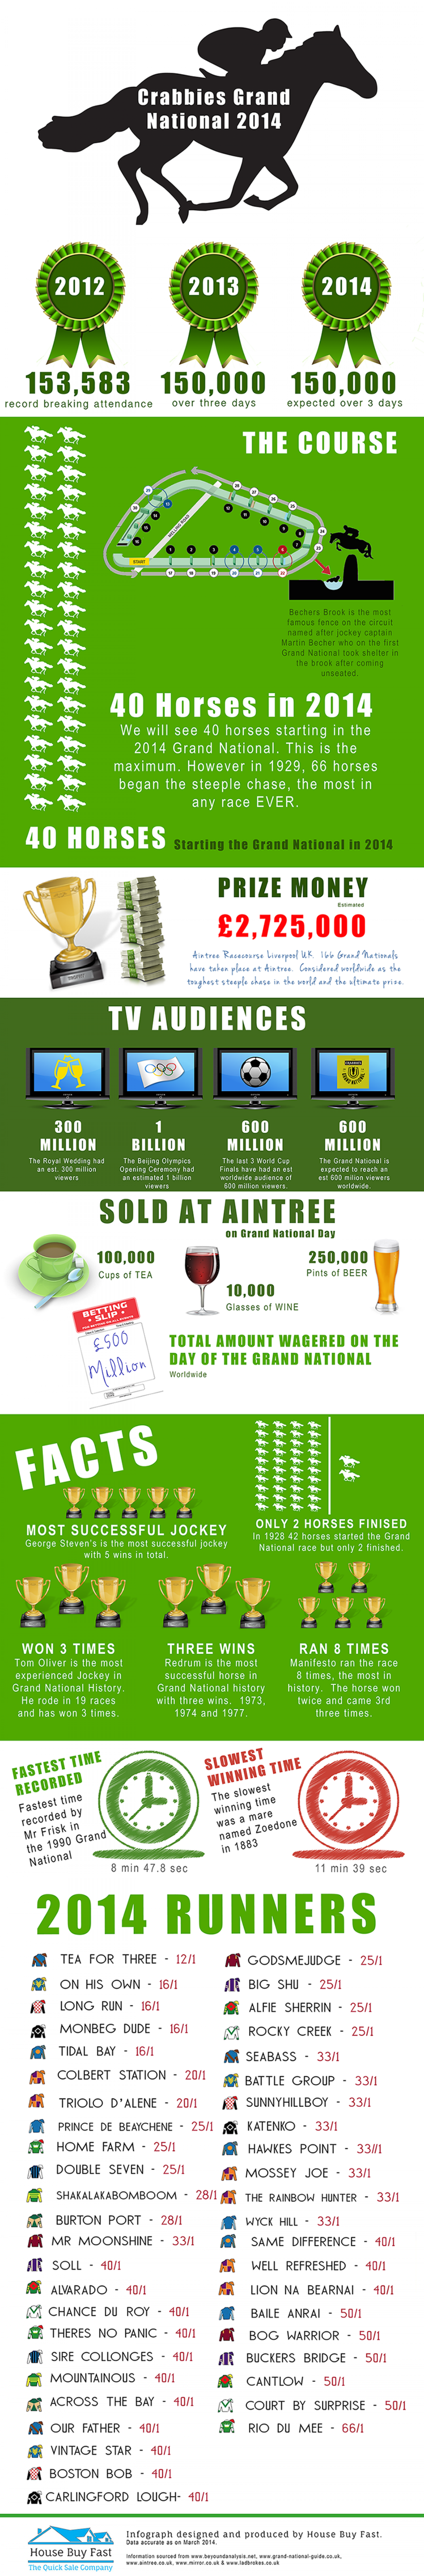 Crabbies Grand National 2014 Infographic